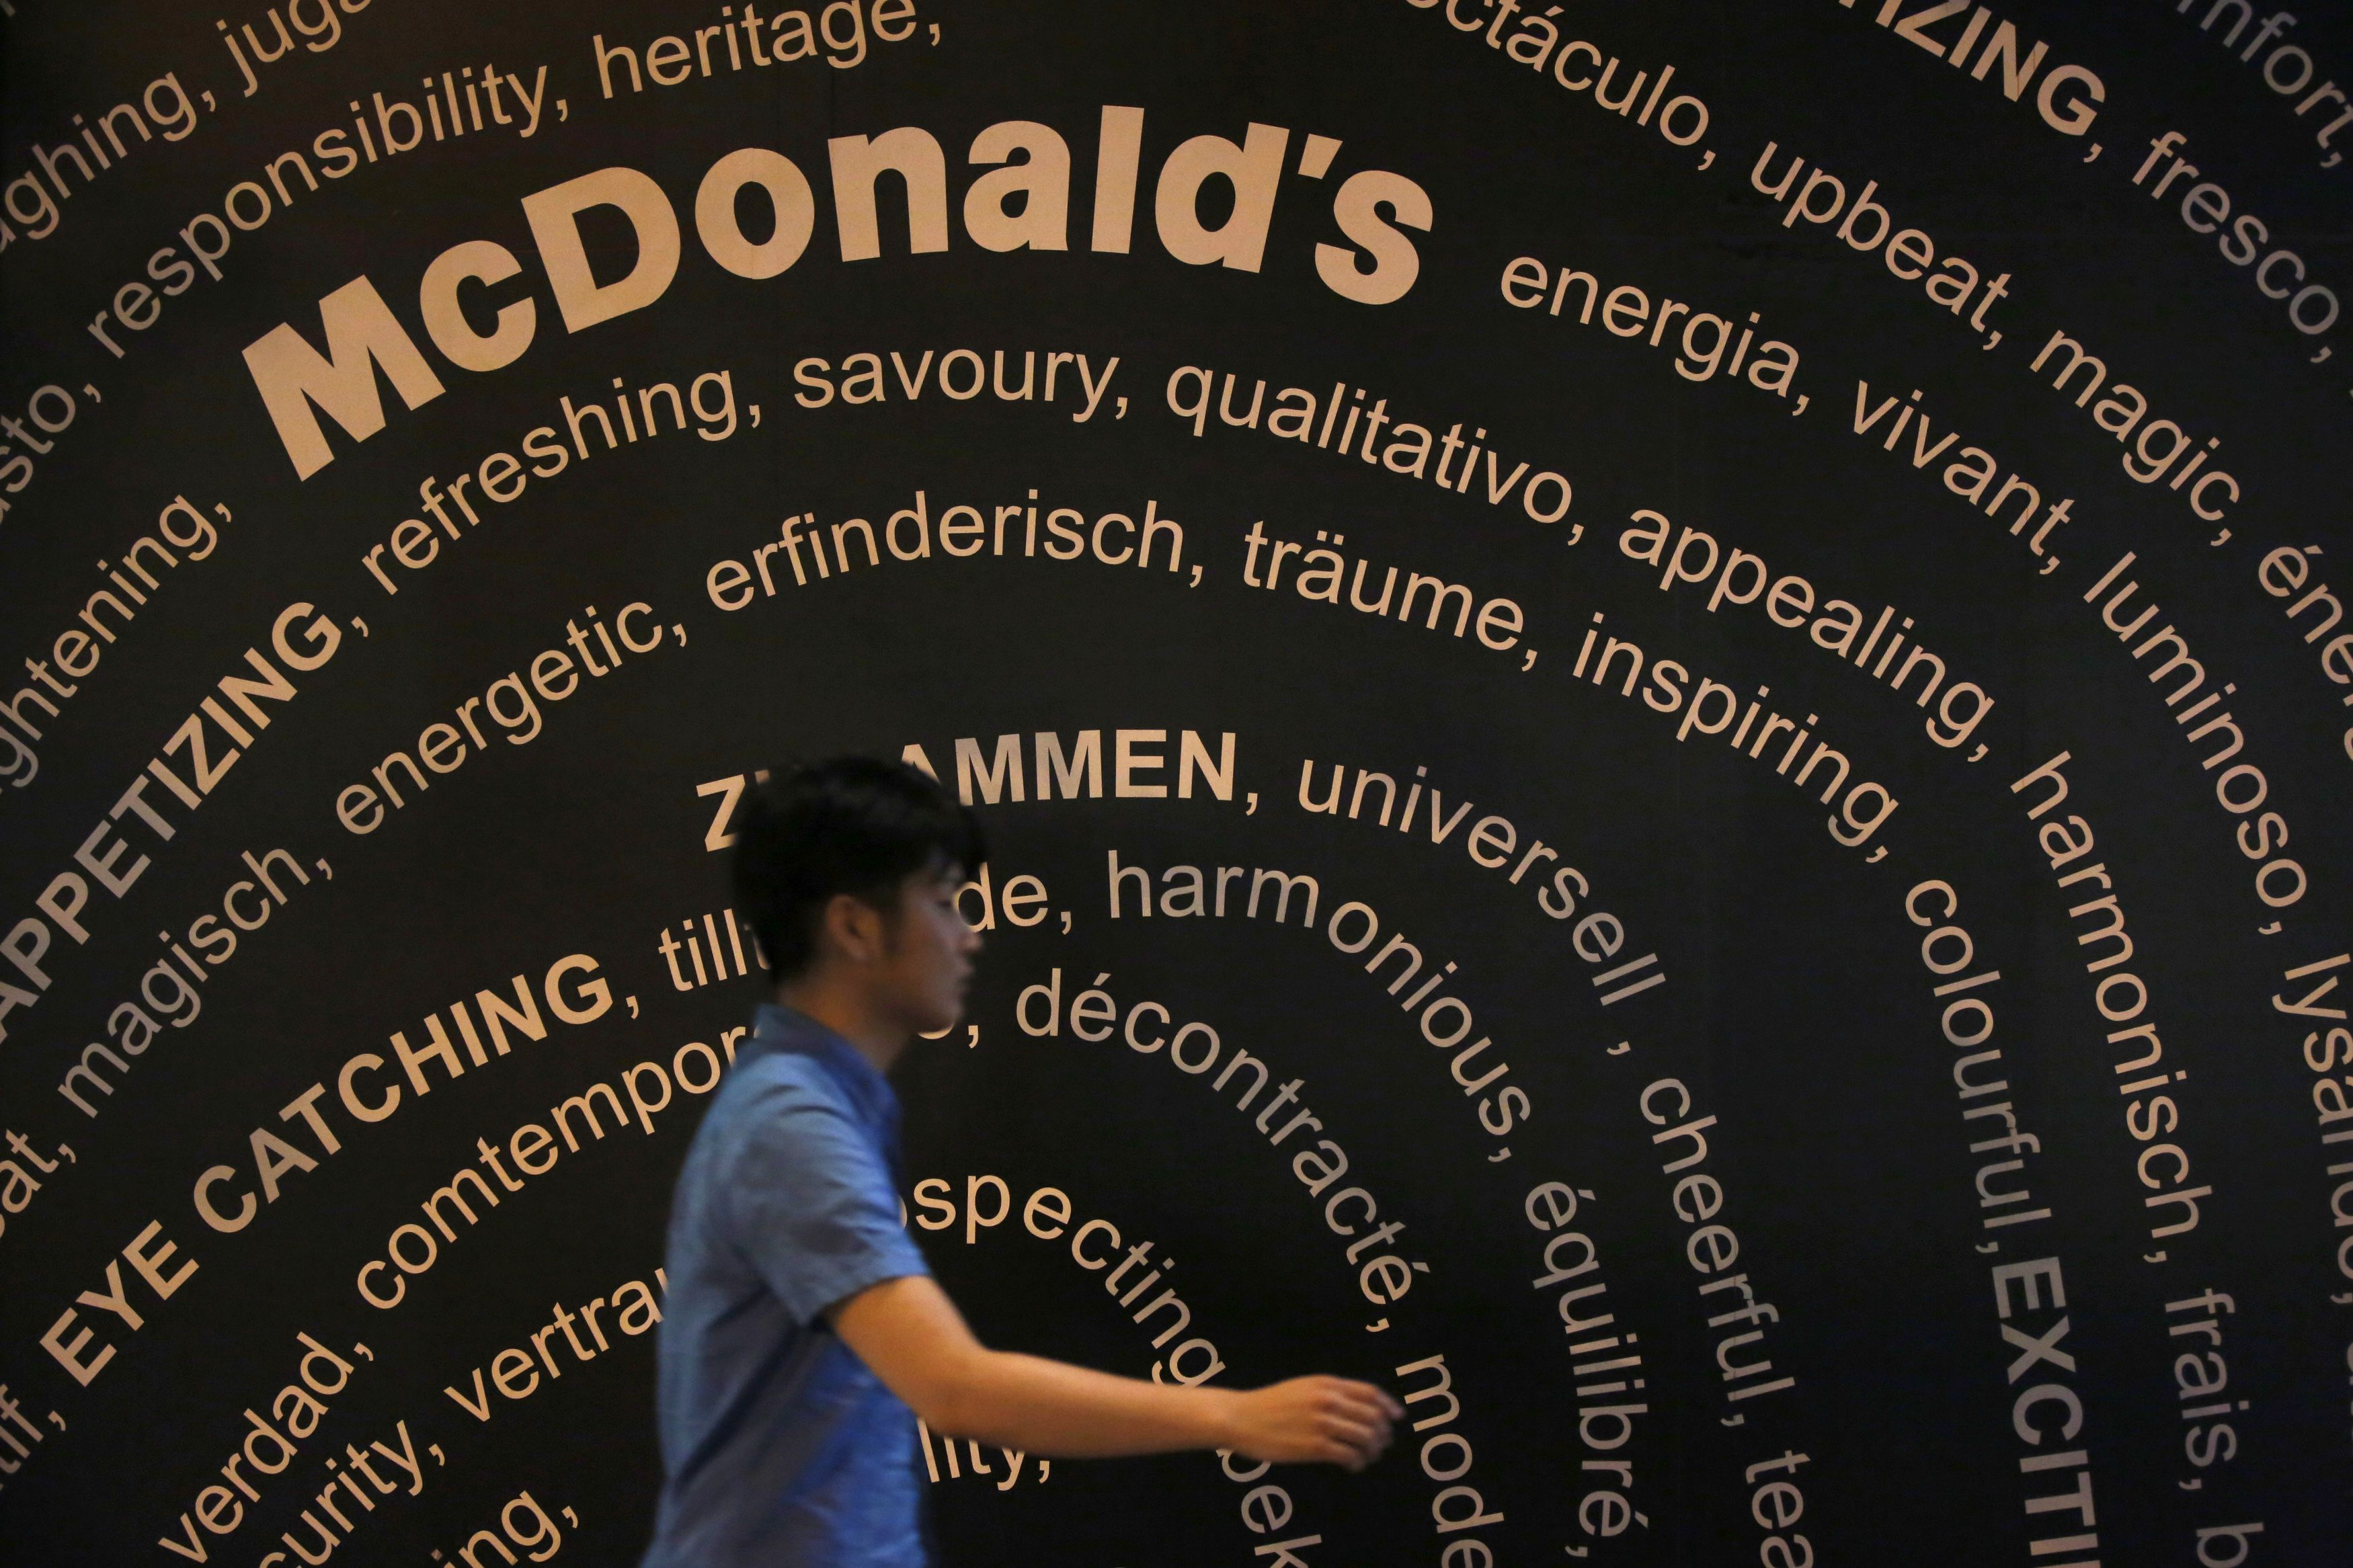 A passerby walks past a McDonald's store in Tokyo July 31, 2014. Officials from McDonald's in China and Hong Kong have not responded to requests for information on the impact on sales from the scandal, but McDonald's Holdings Co (Japan) Ltd on Tuesday scrapped its full-year earnings guidance after the China scare forced it to switch to alternative chicken supplies. A McDonald's Japan executive said sales had dropped 15-20 percent on a daily basis due to the scare. REUTERS/Issei Kato (JAPAN - Tags: BUSINESS EMPLOYMENT FOOD HEALTH) - RTR40RV4